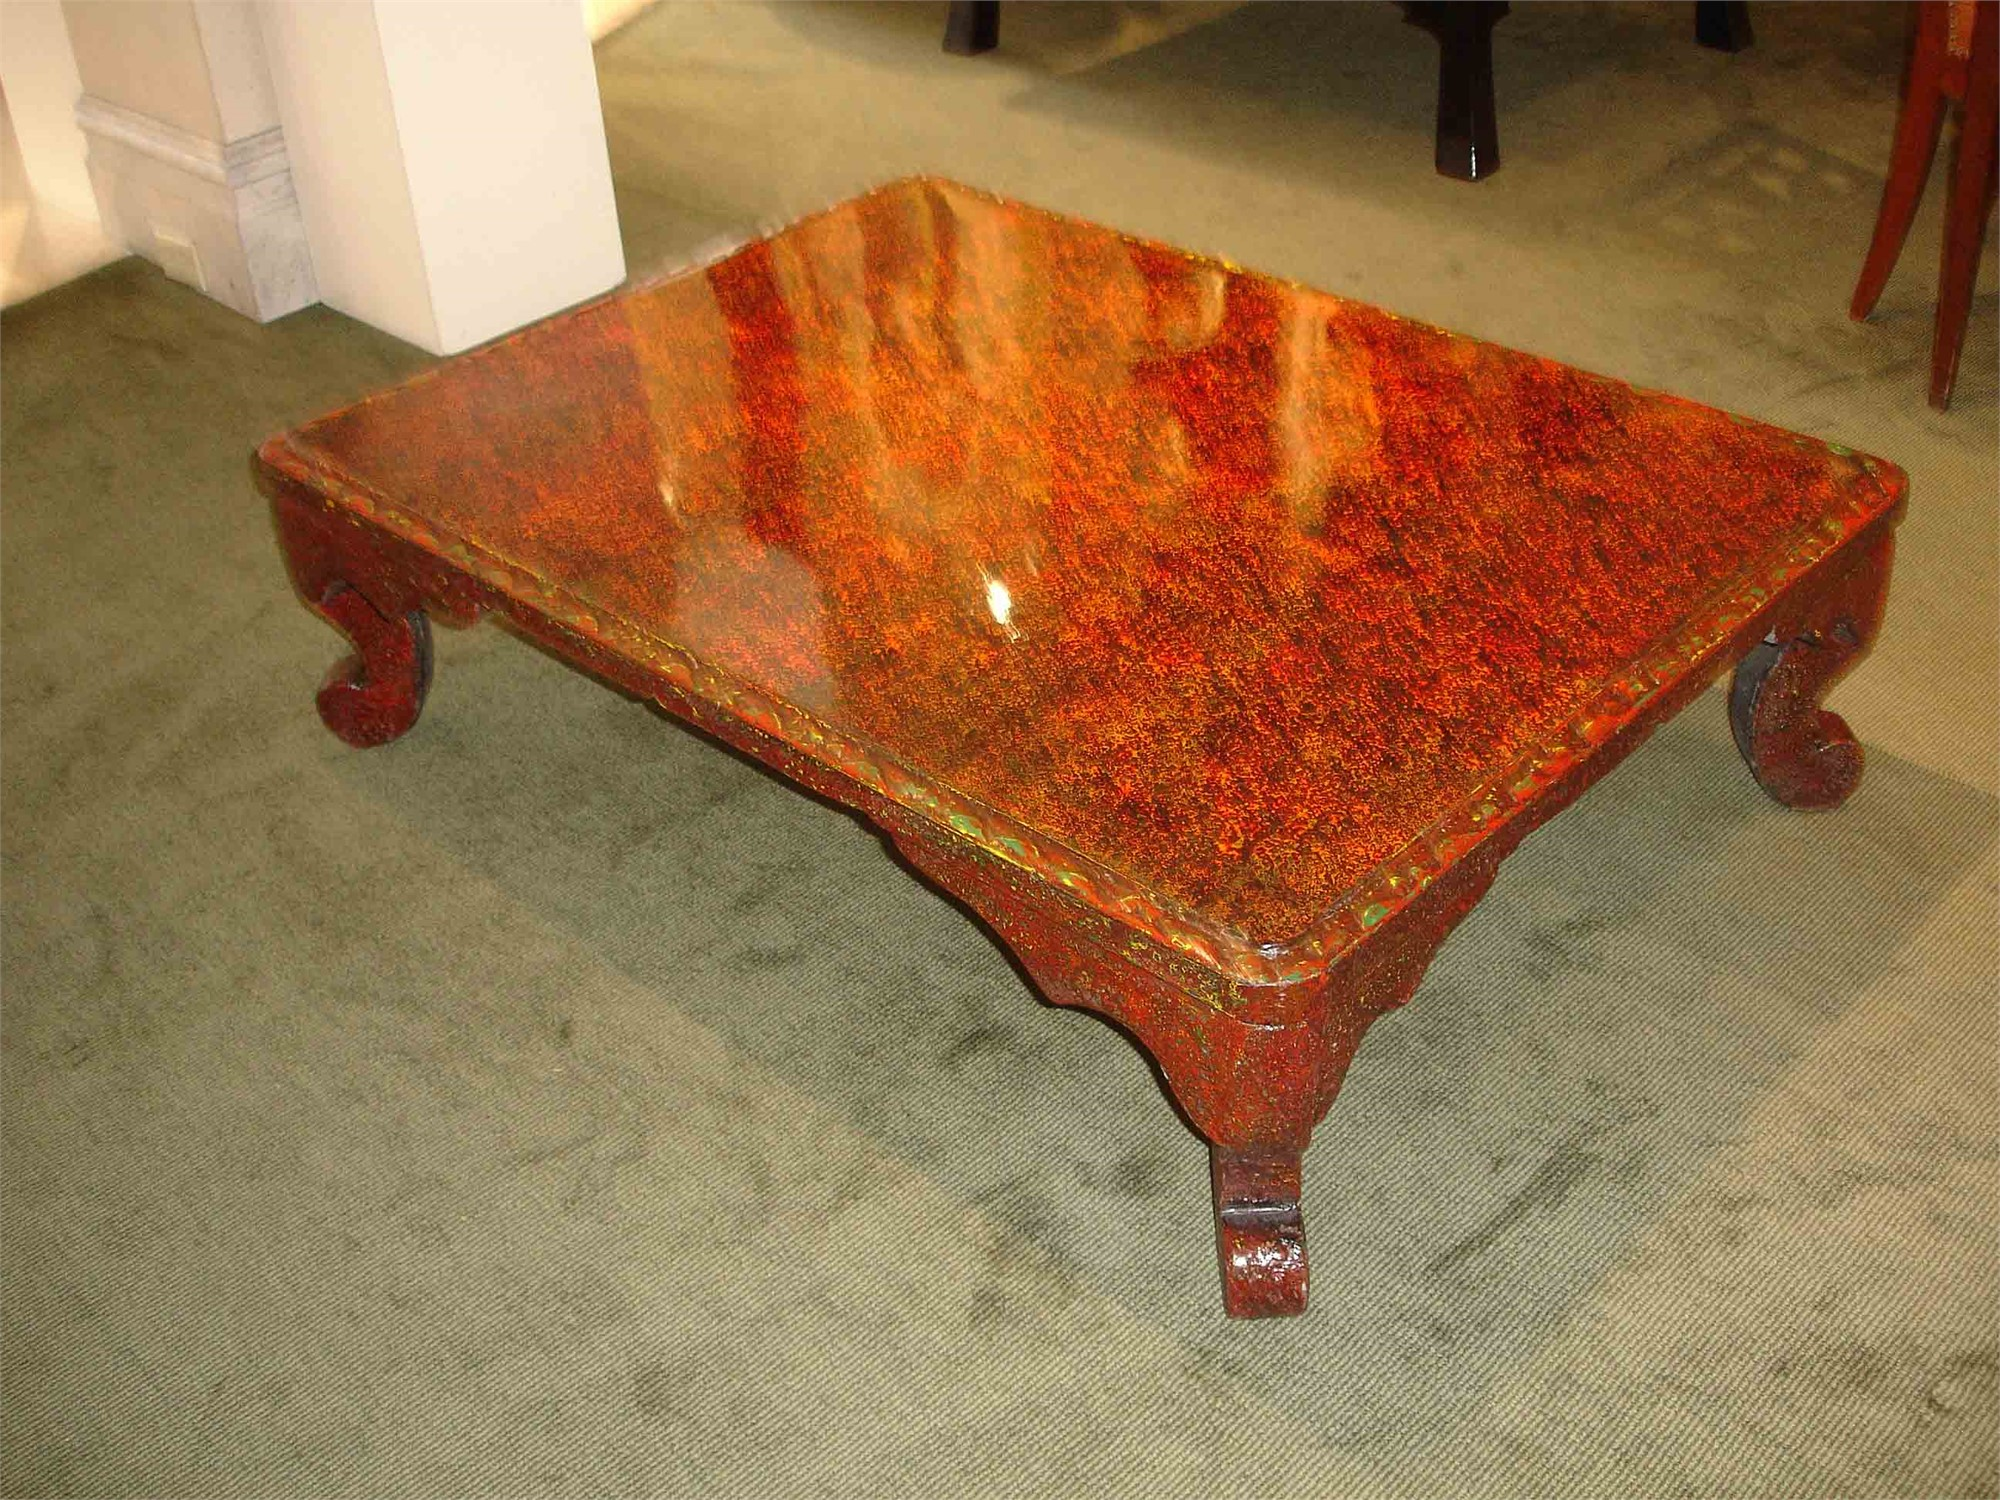 SINGLE RED LACQUER LOW TABLE WITH BAROQUE LEGS